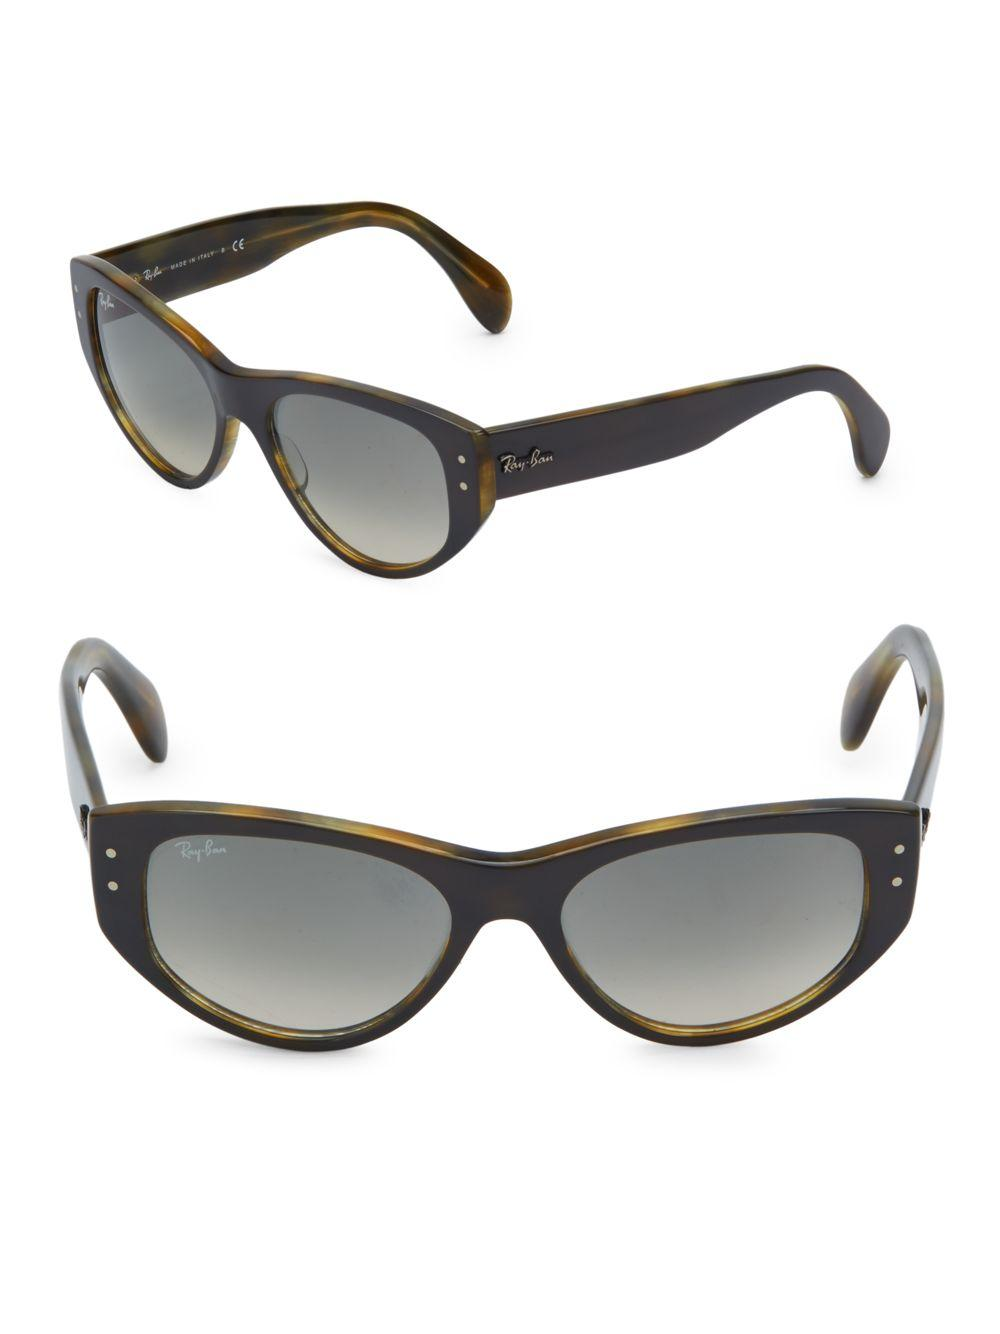 af4c527b702 Ray-Ban Vagabond Logo Temple Sunglasses in Gray - Lyst